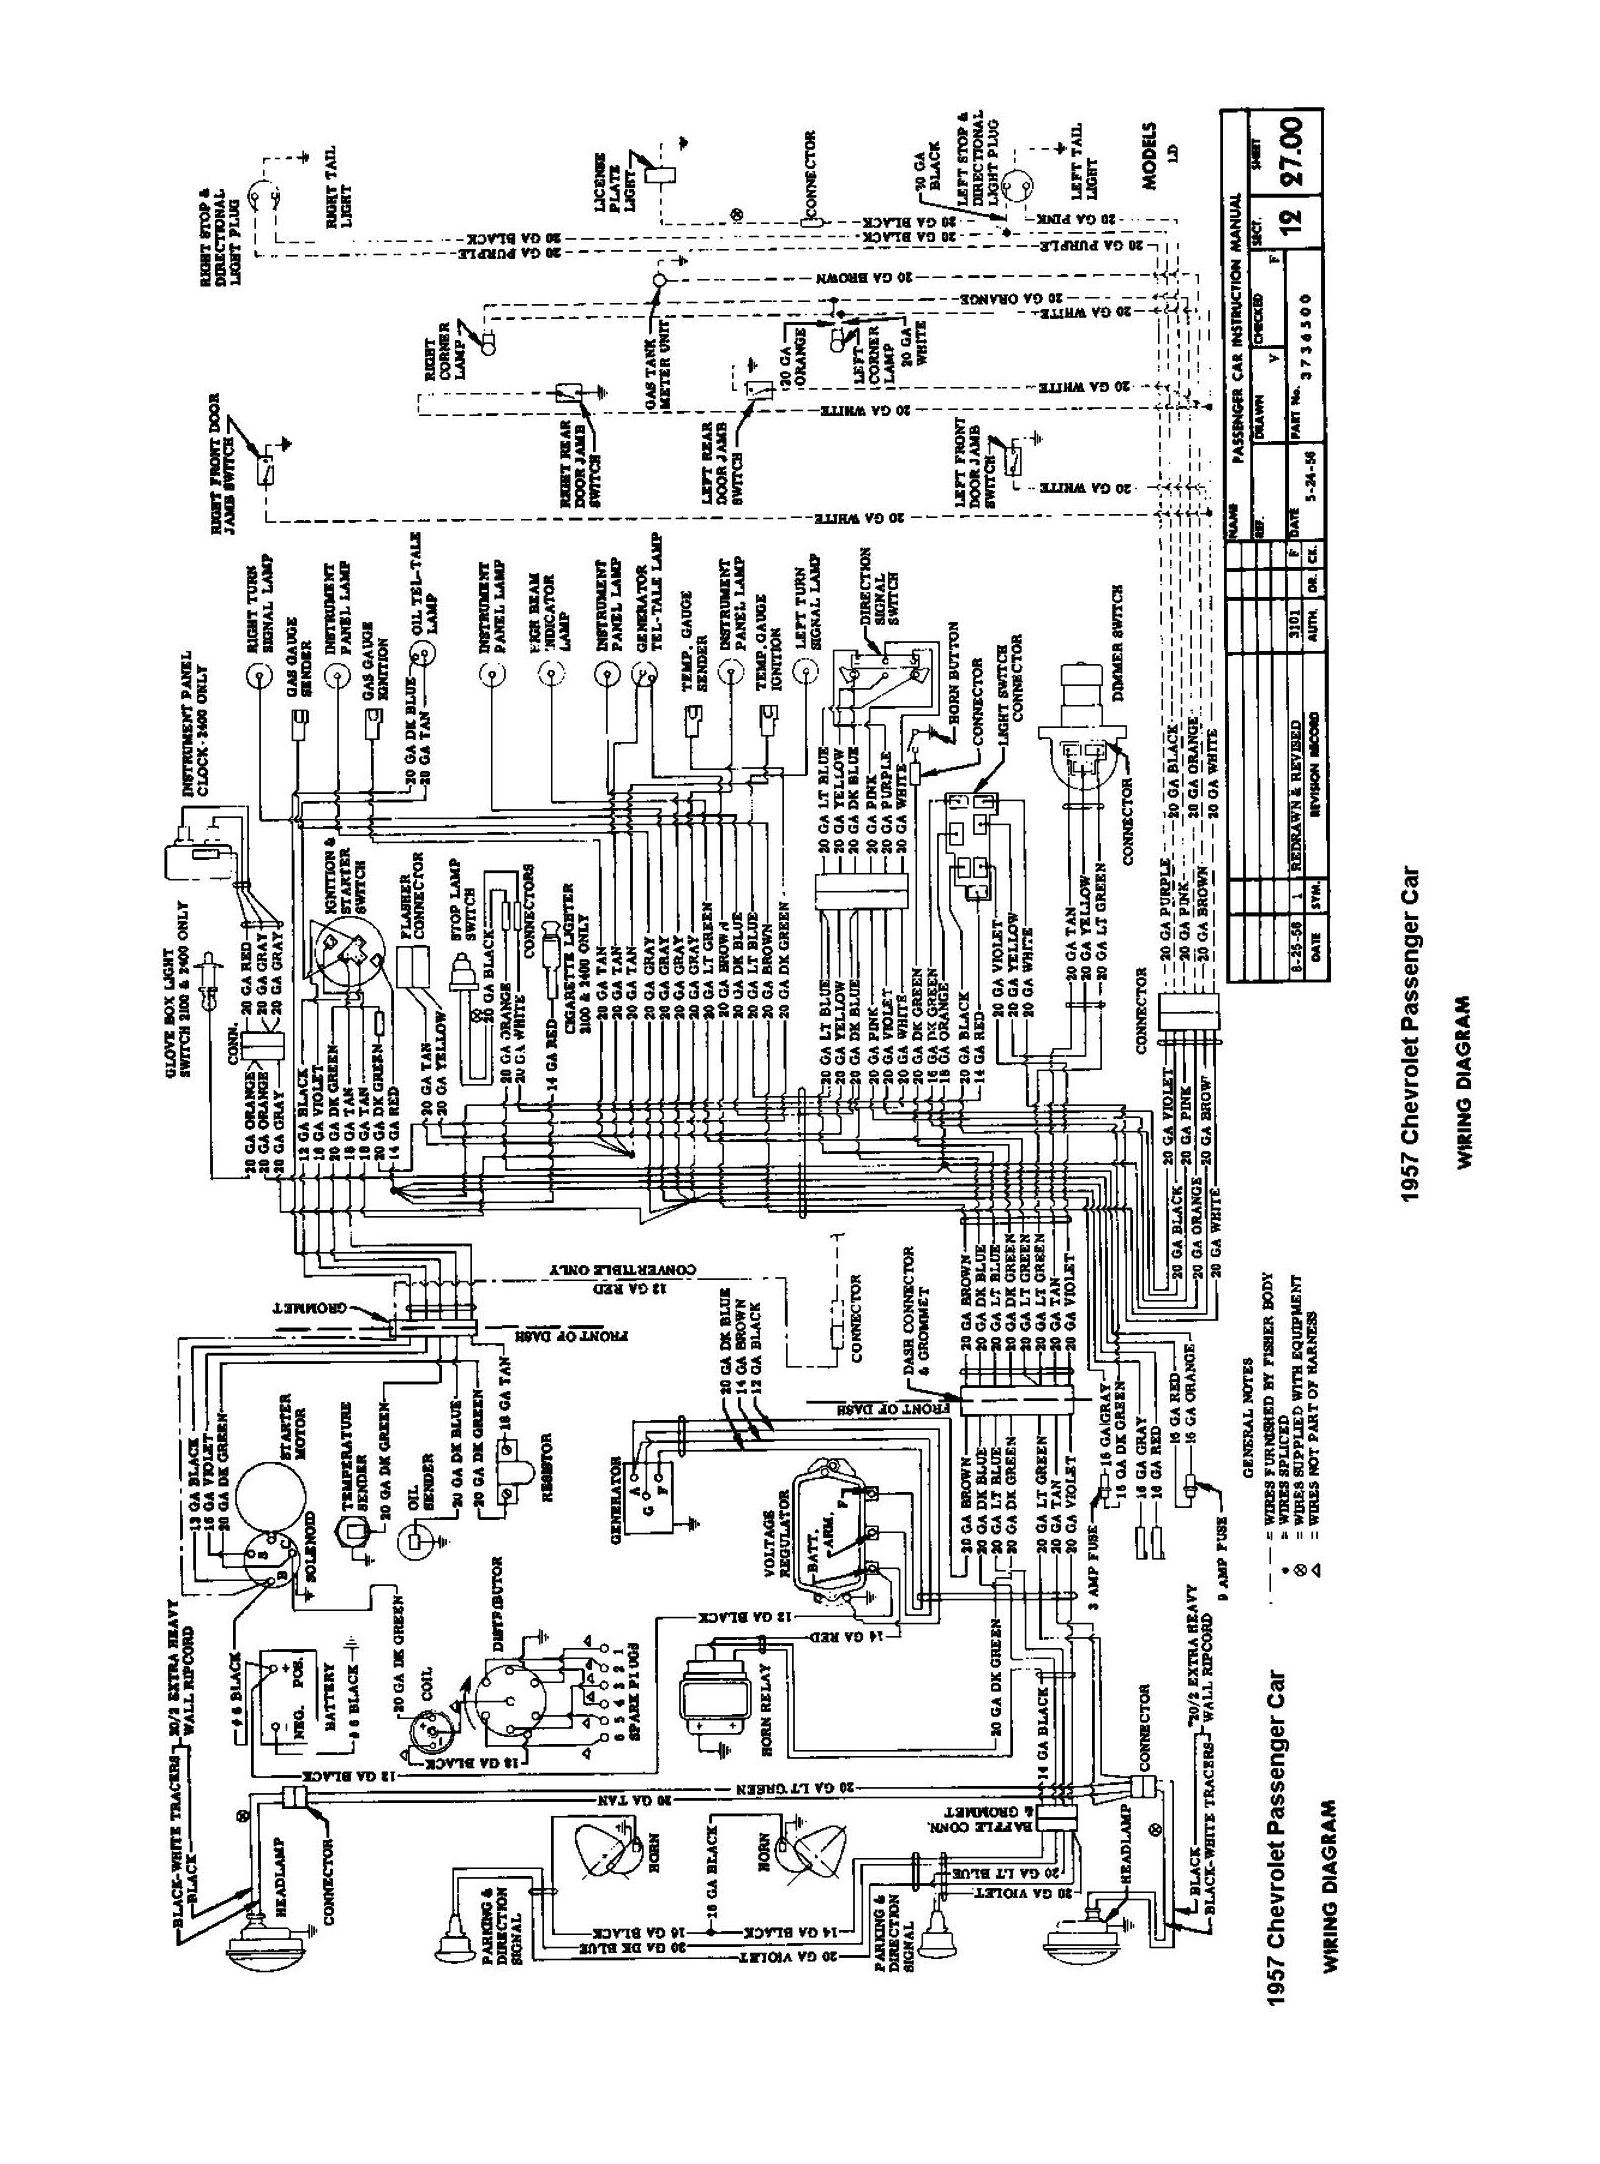 1956 chevy radio wiring diagram